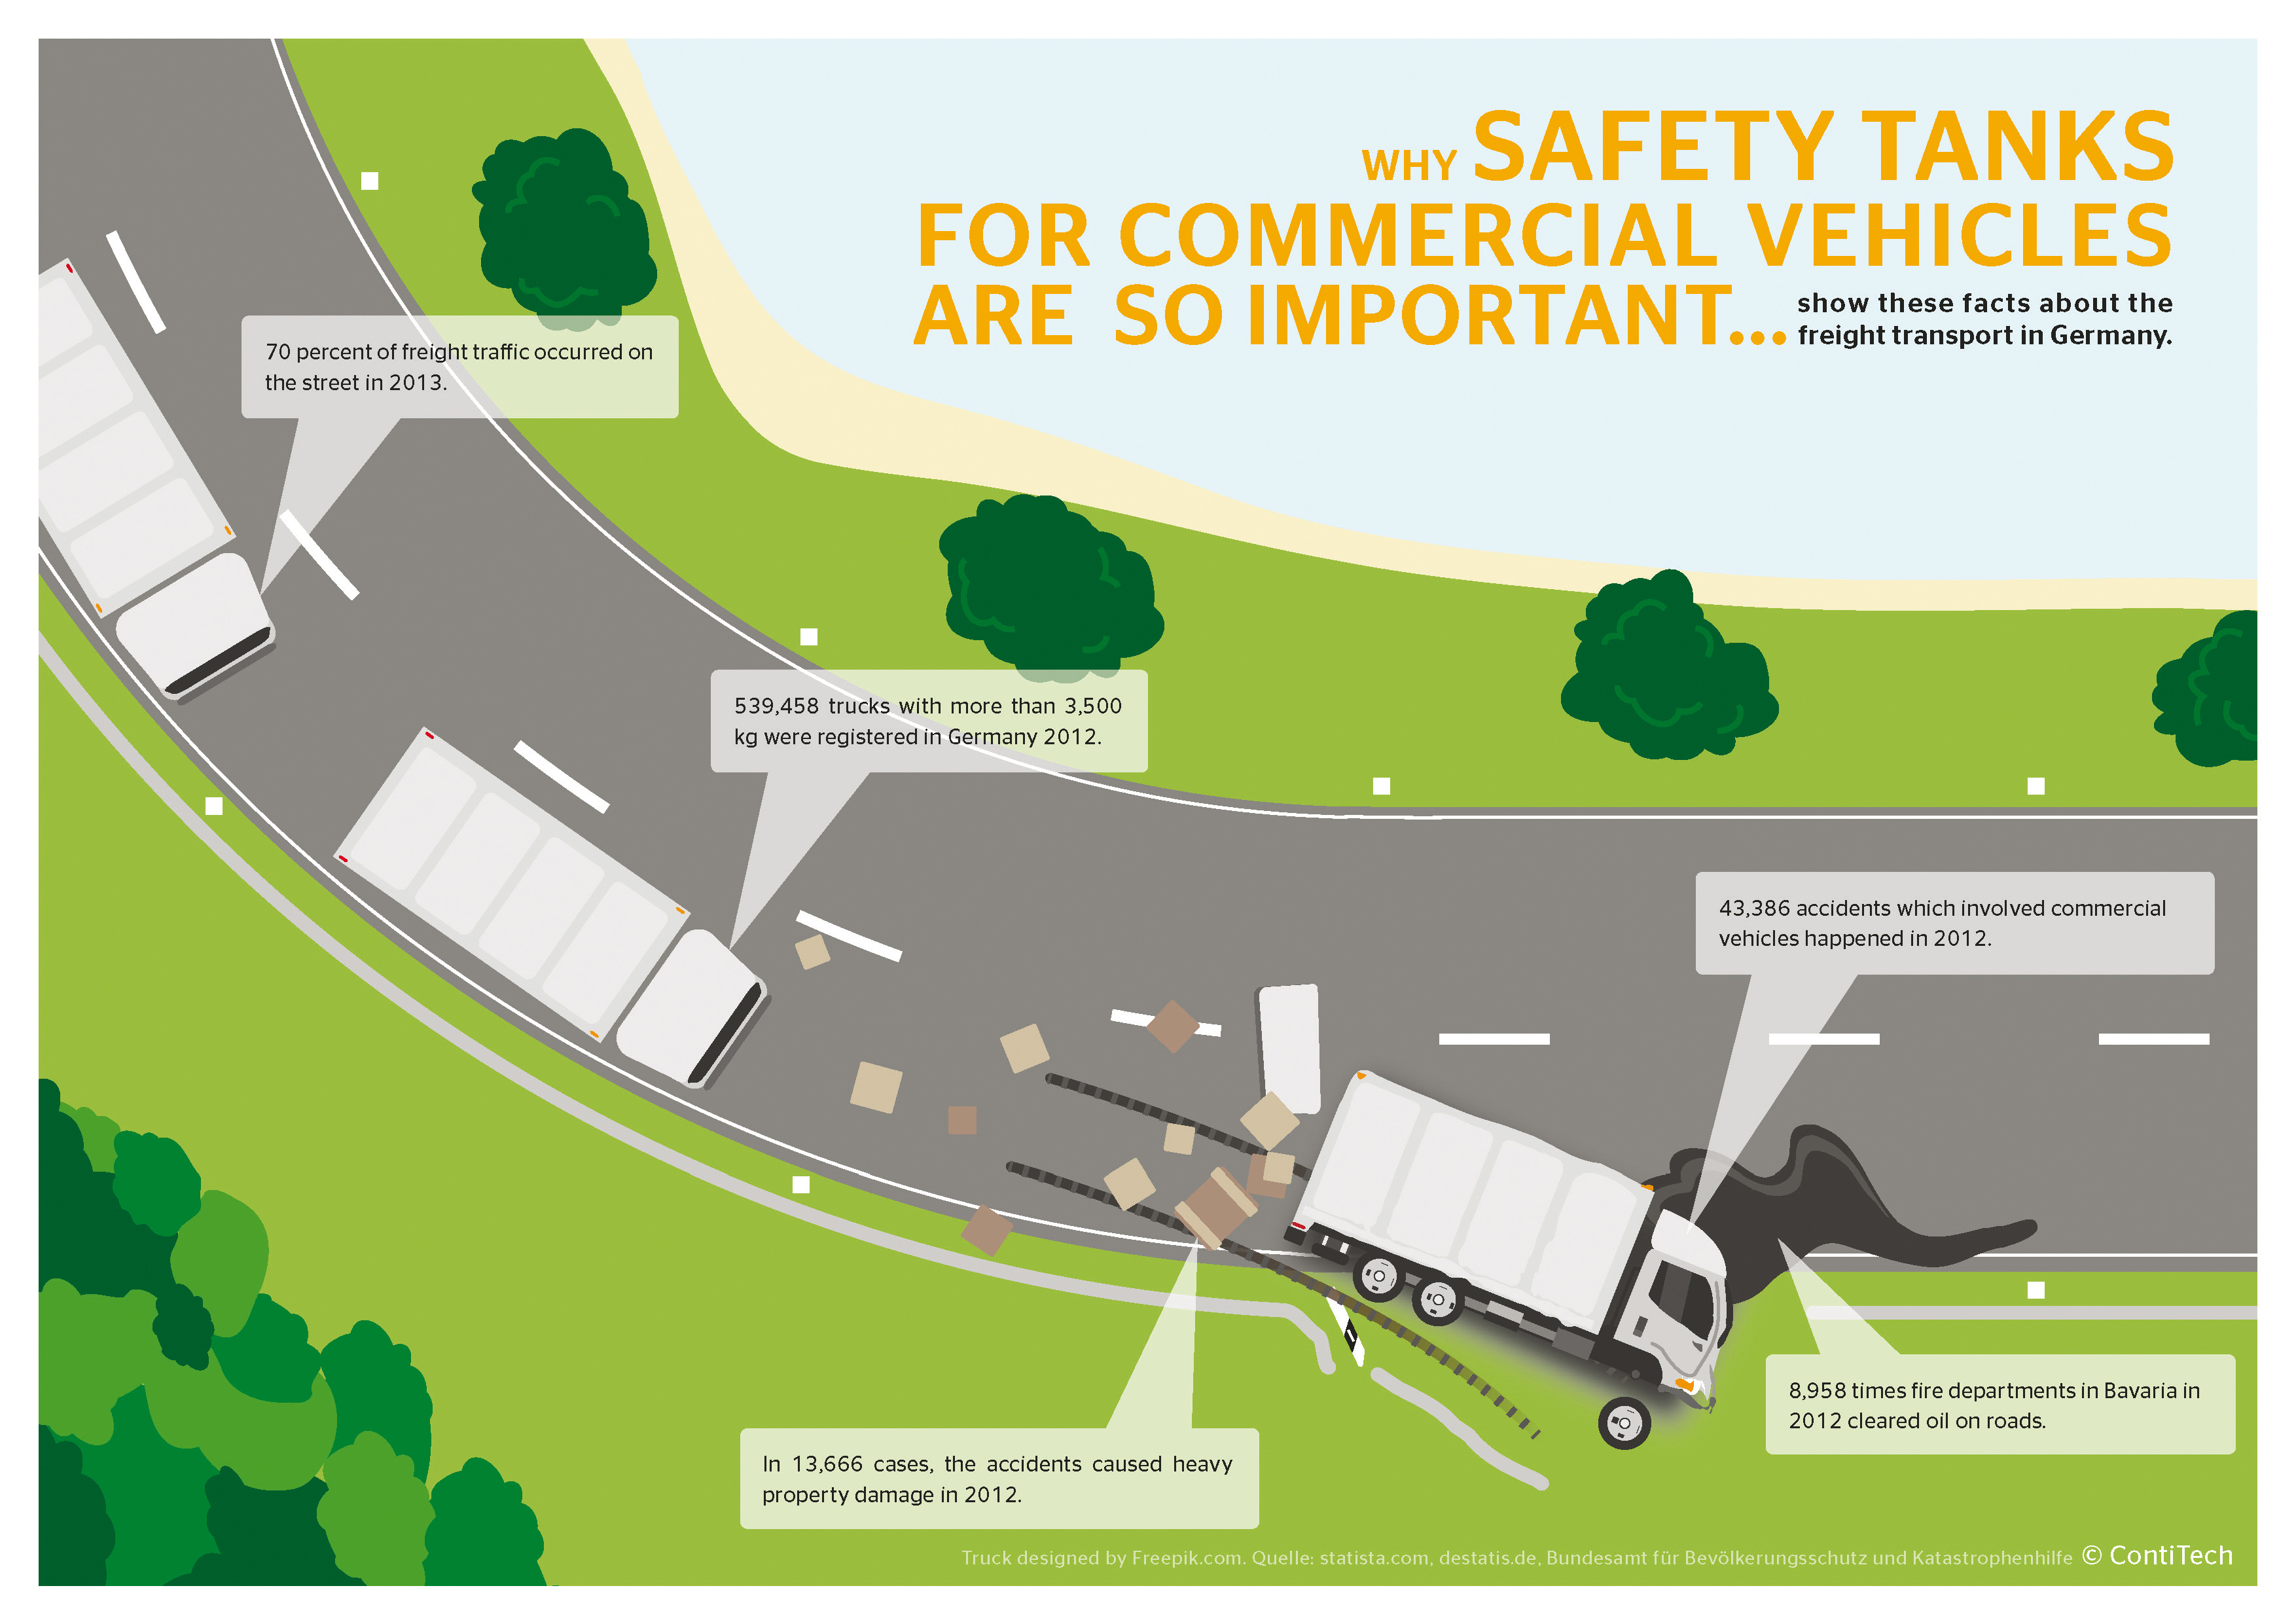 Why safety tanks for commercial vehicles are so important show these facts about the freight transport in Germany.